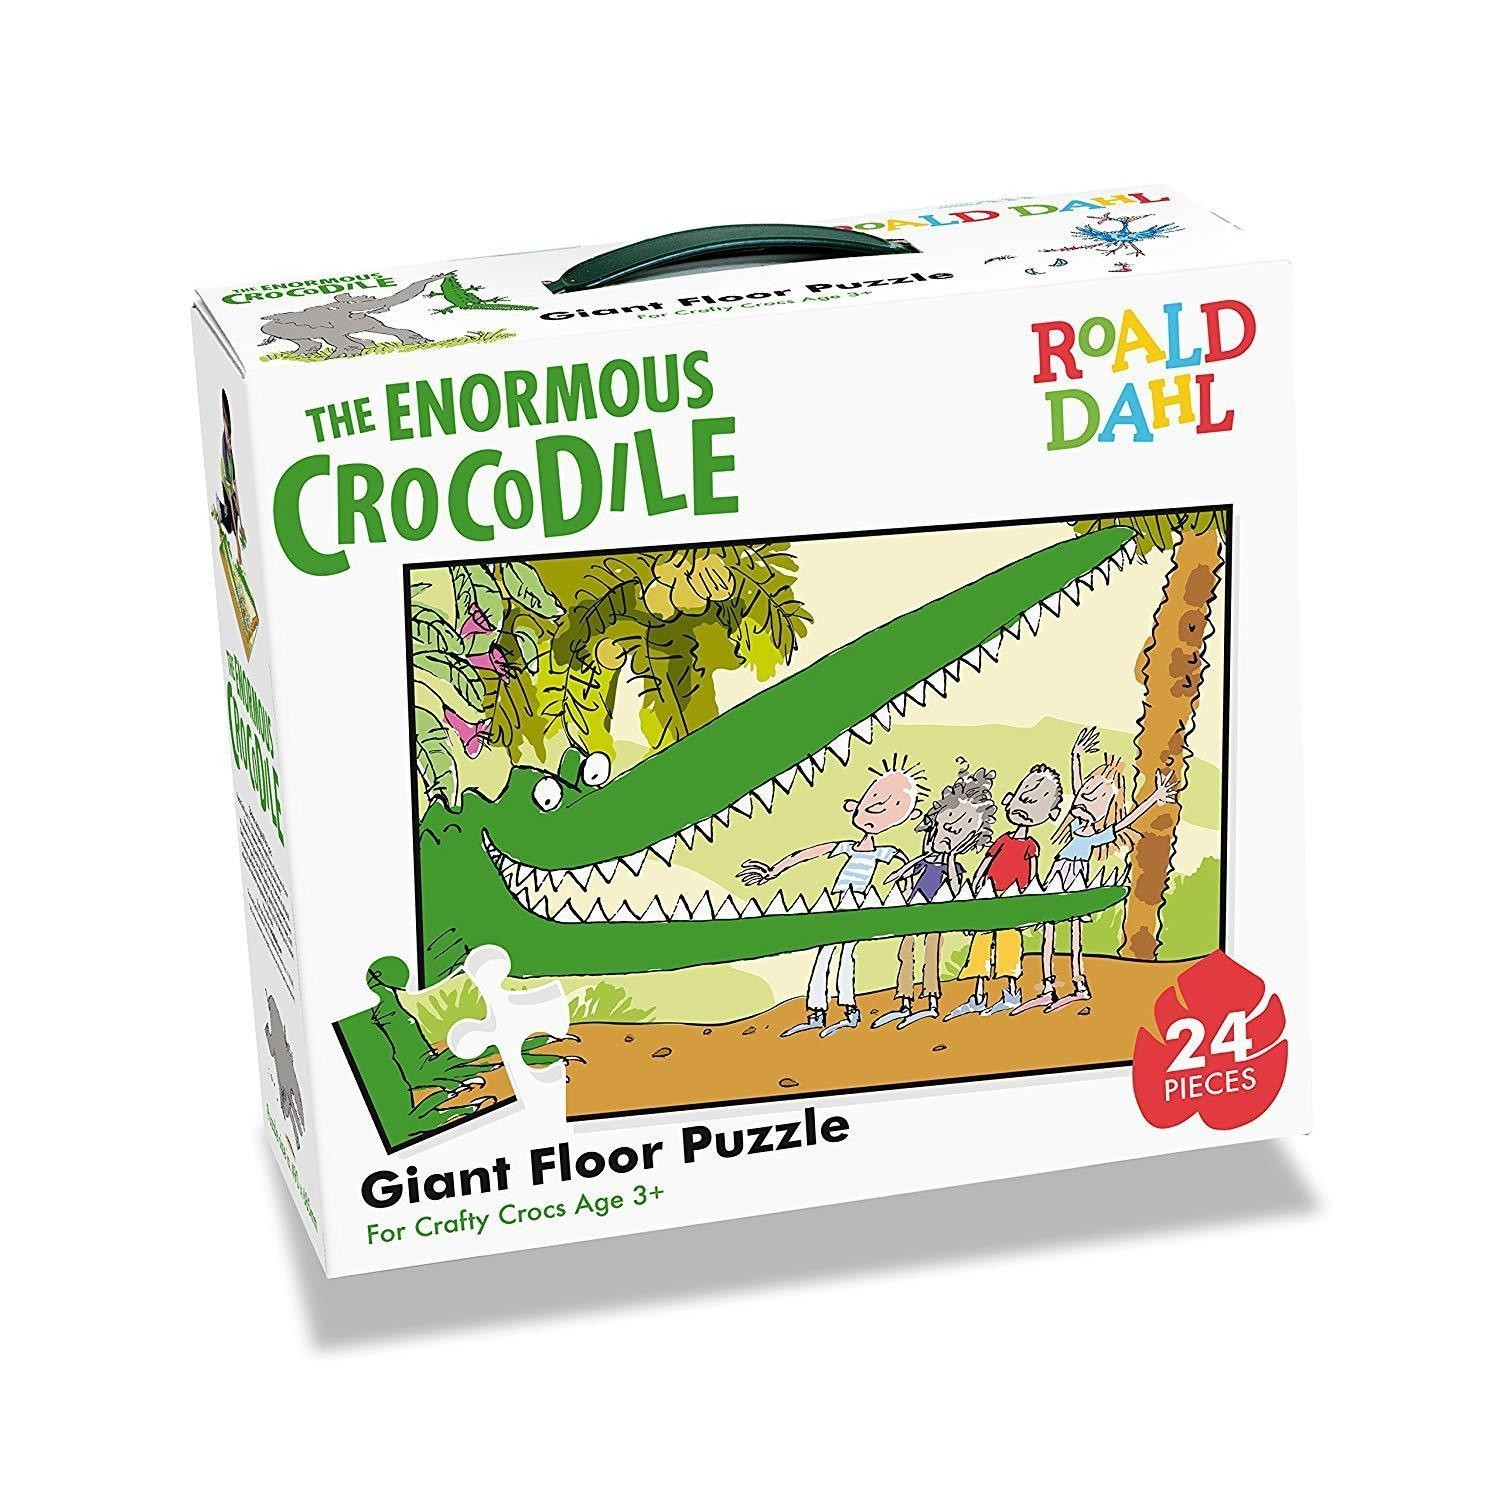 Roald Dahl The Enormous Crocodile Floor Puzzle